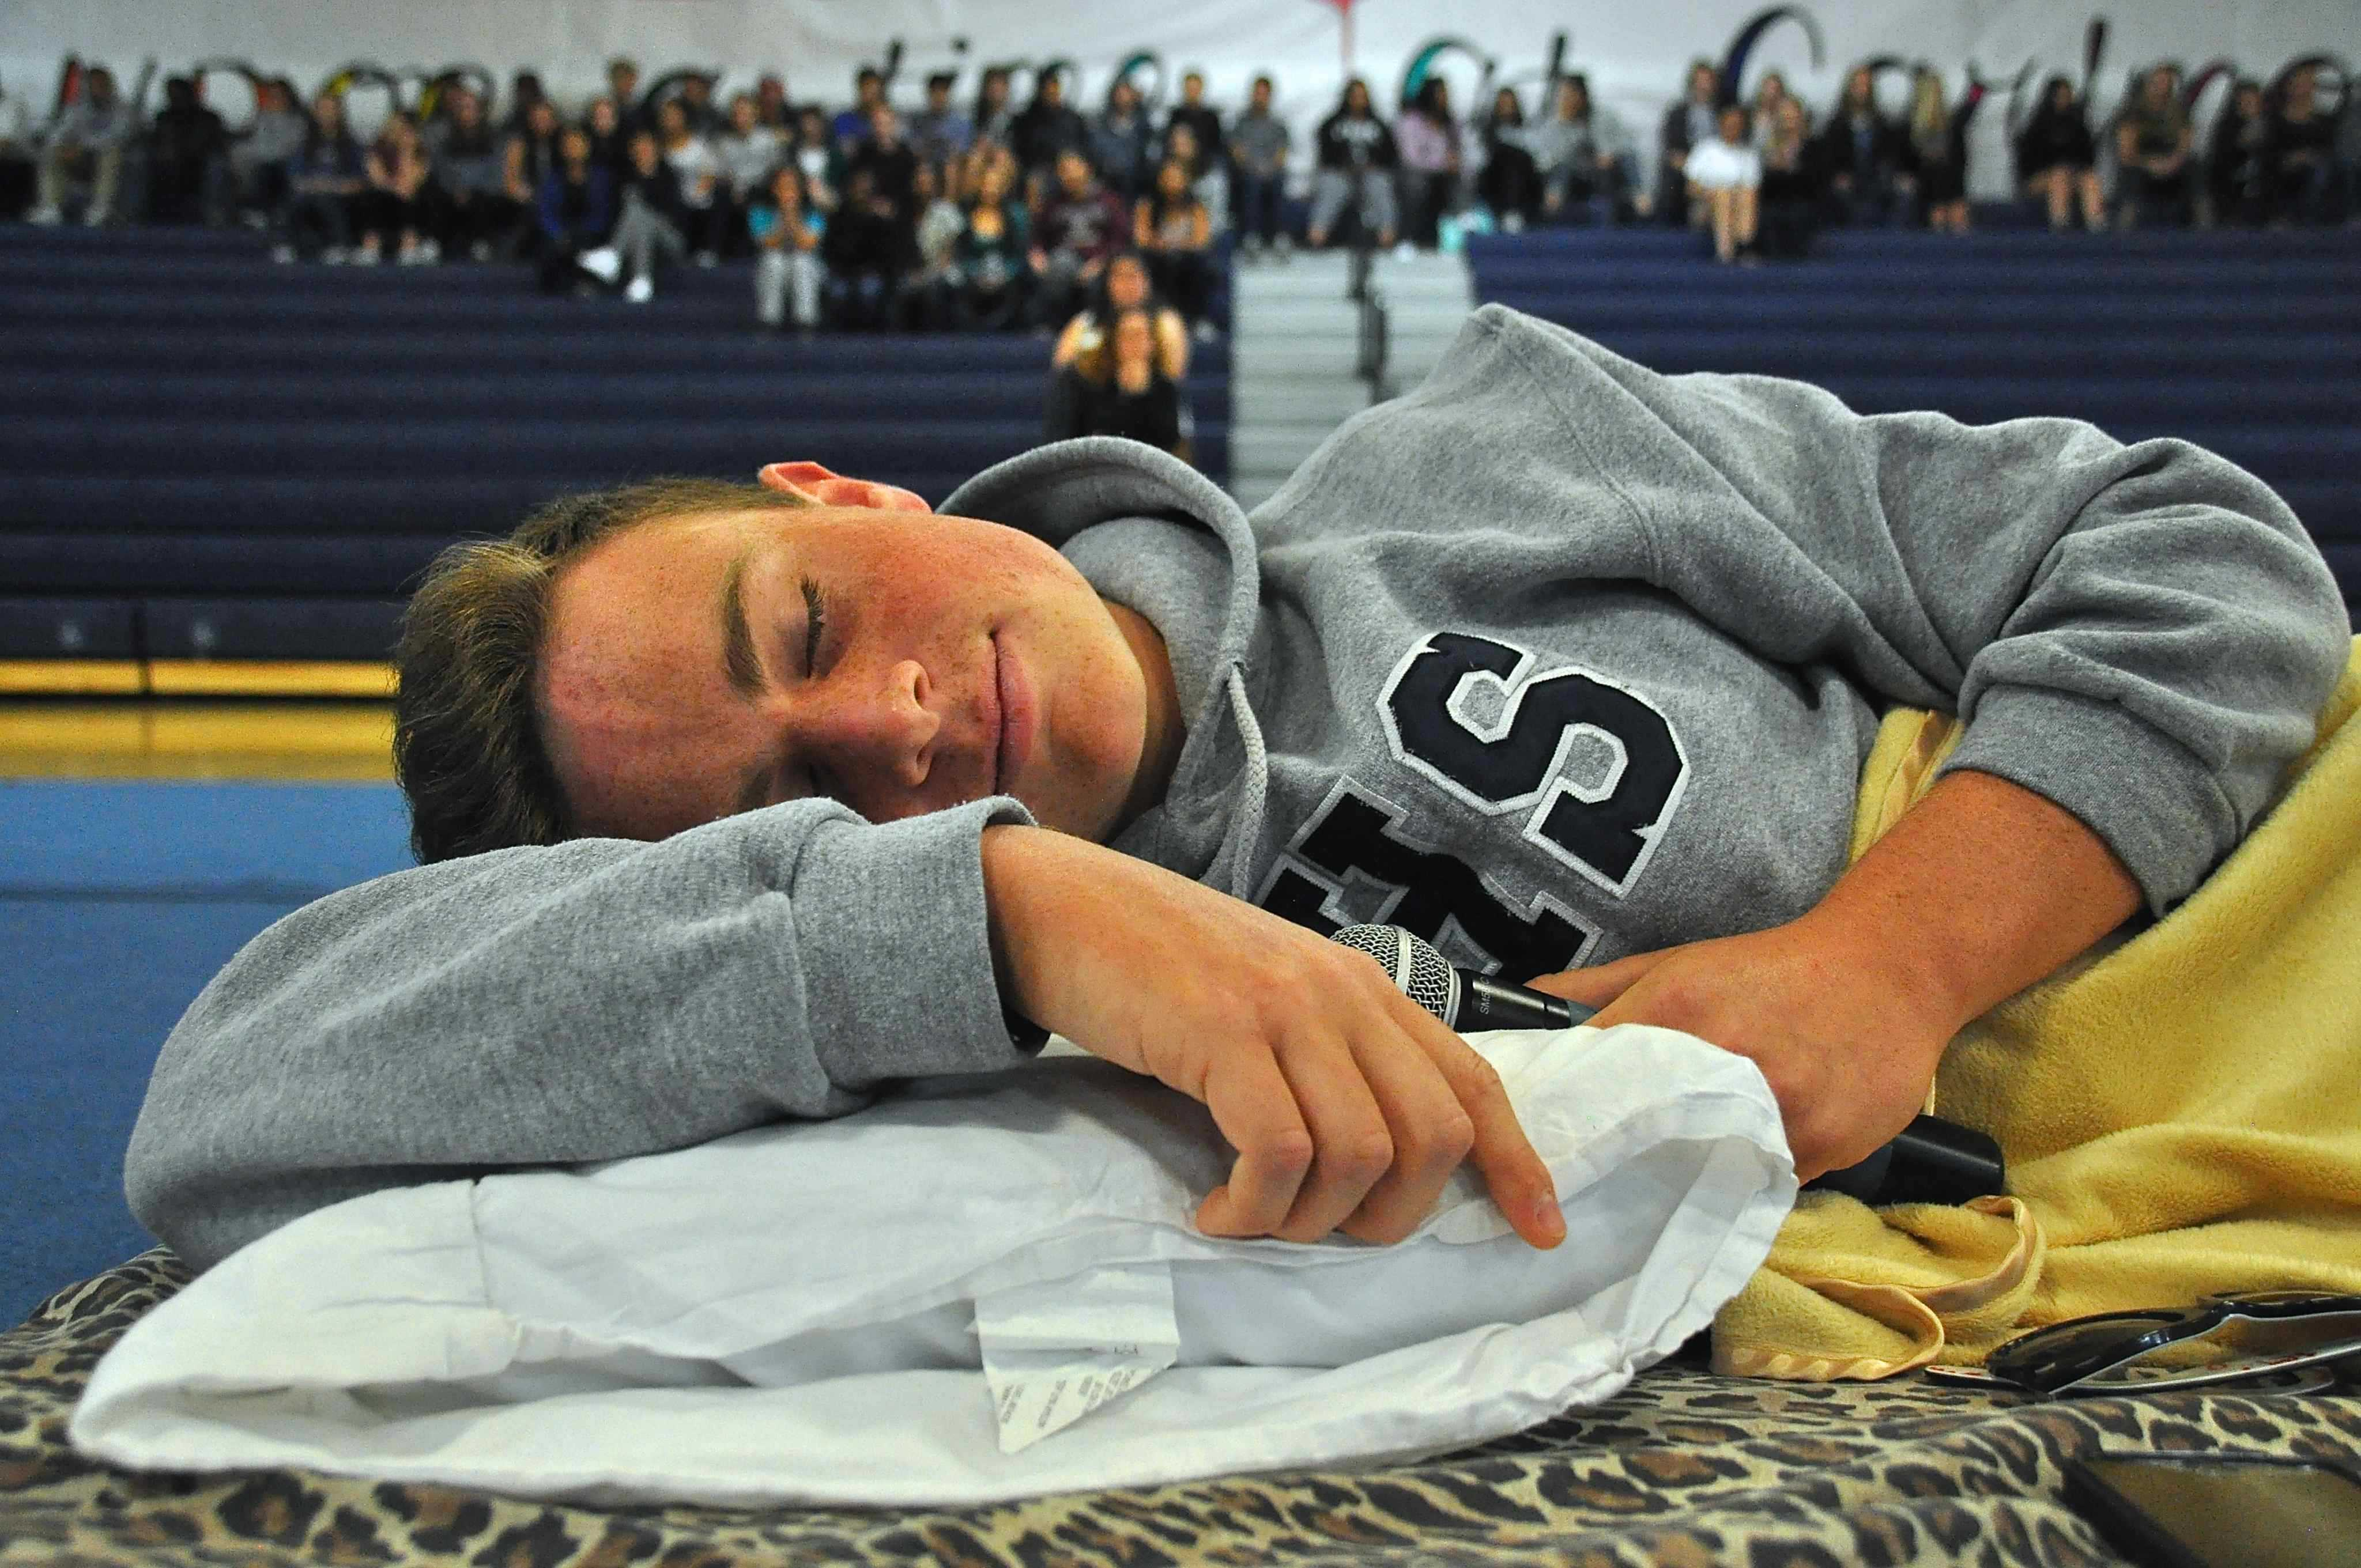 ASB+President+and+senior+Timmy+Miller+gets+into+position+for+the+assembly%27s+starting+act.+